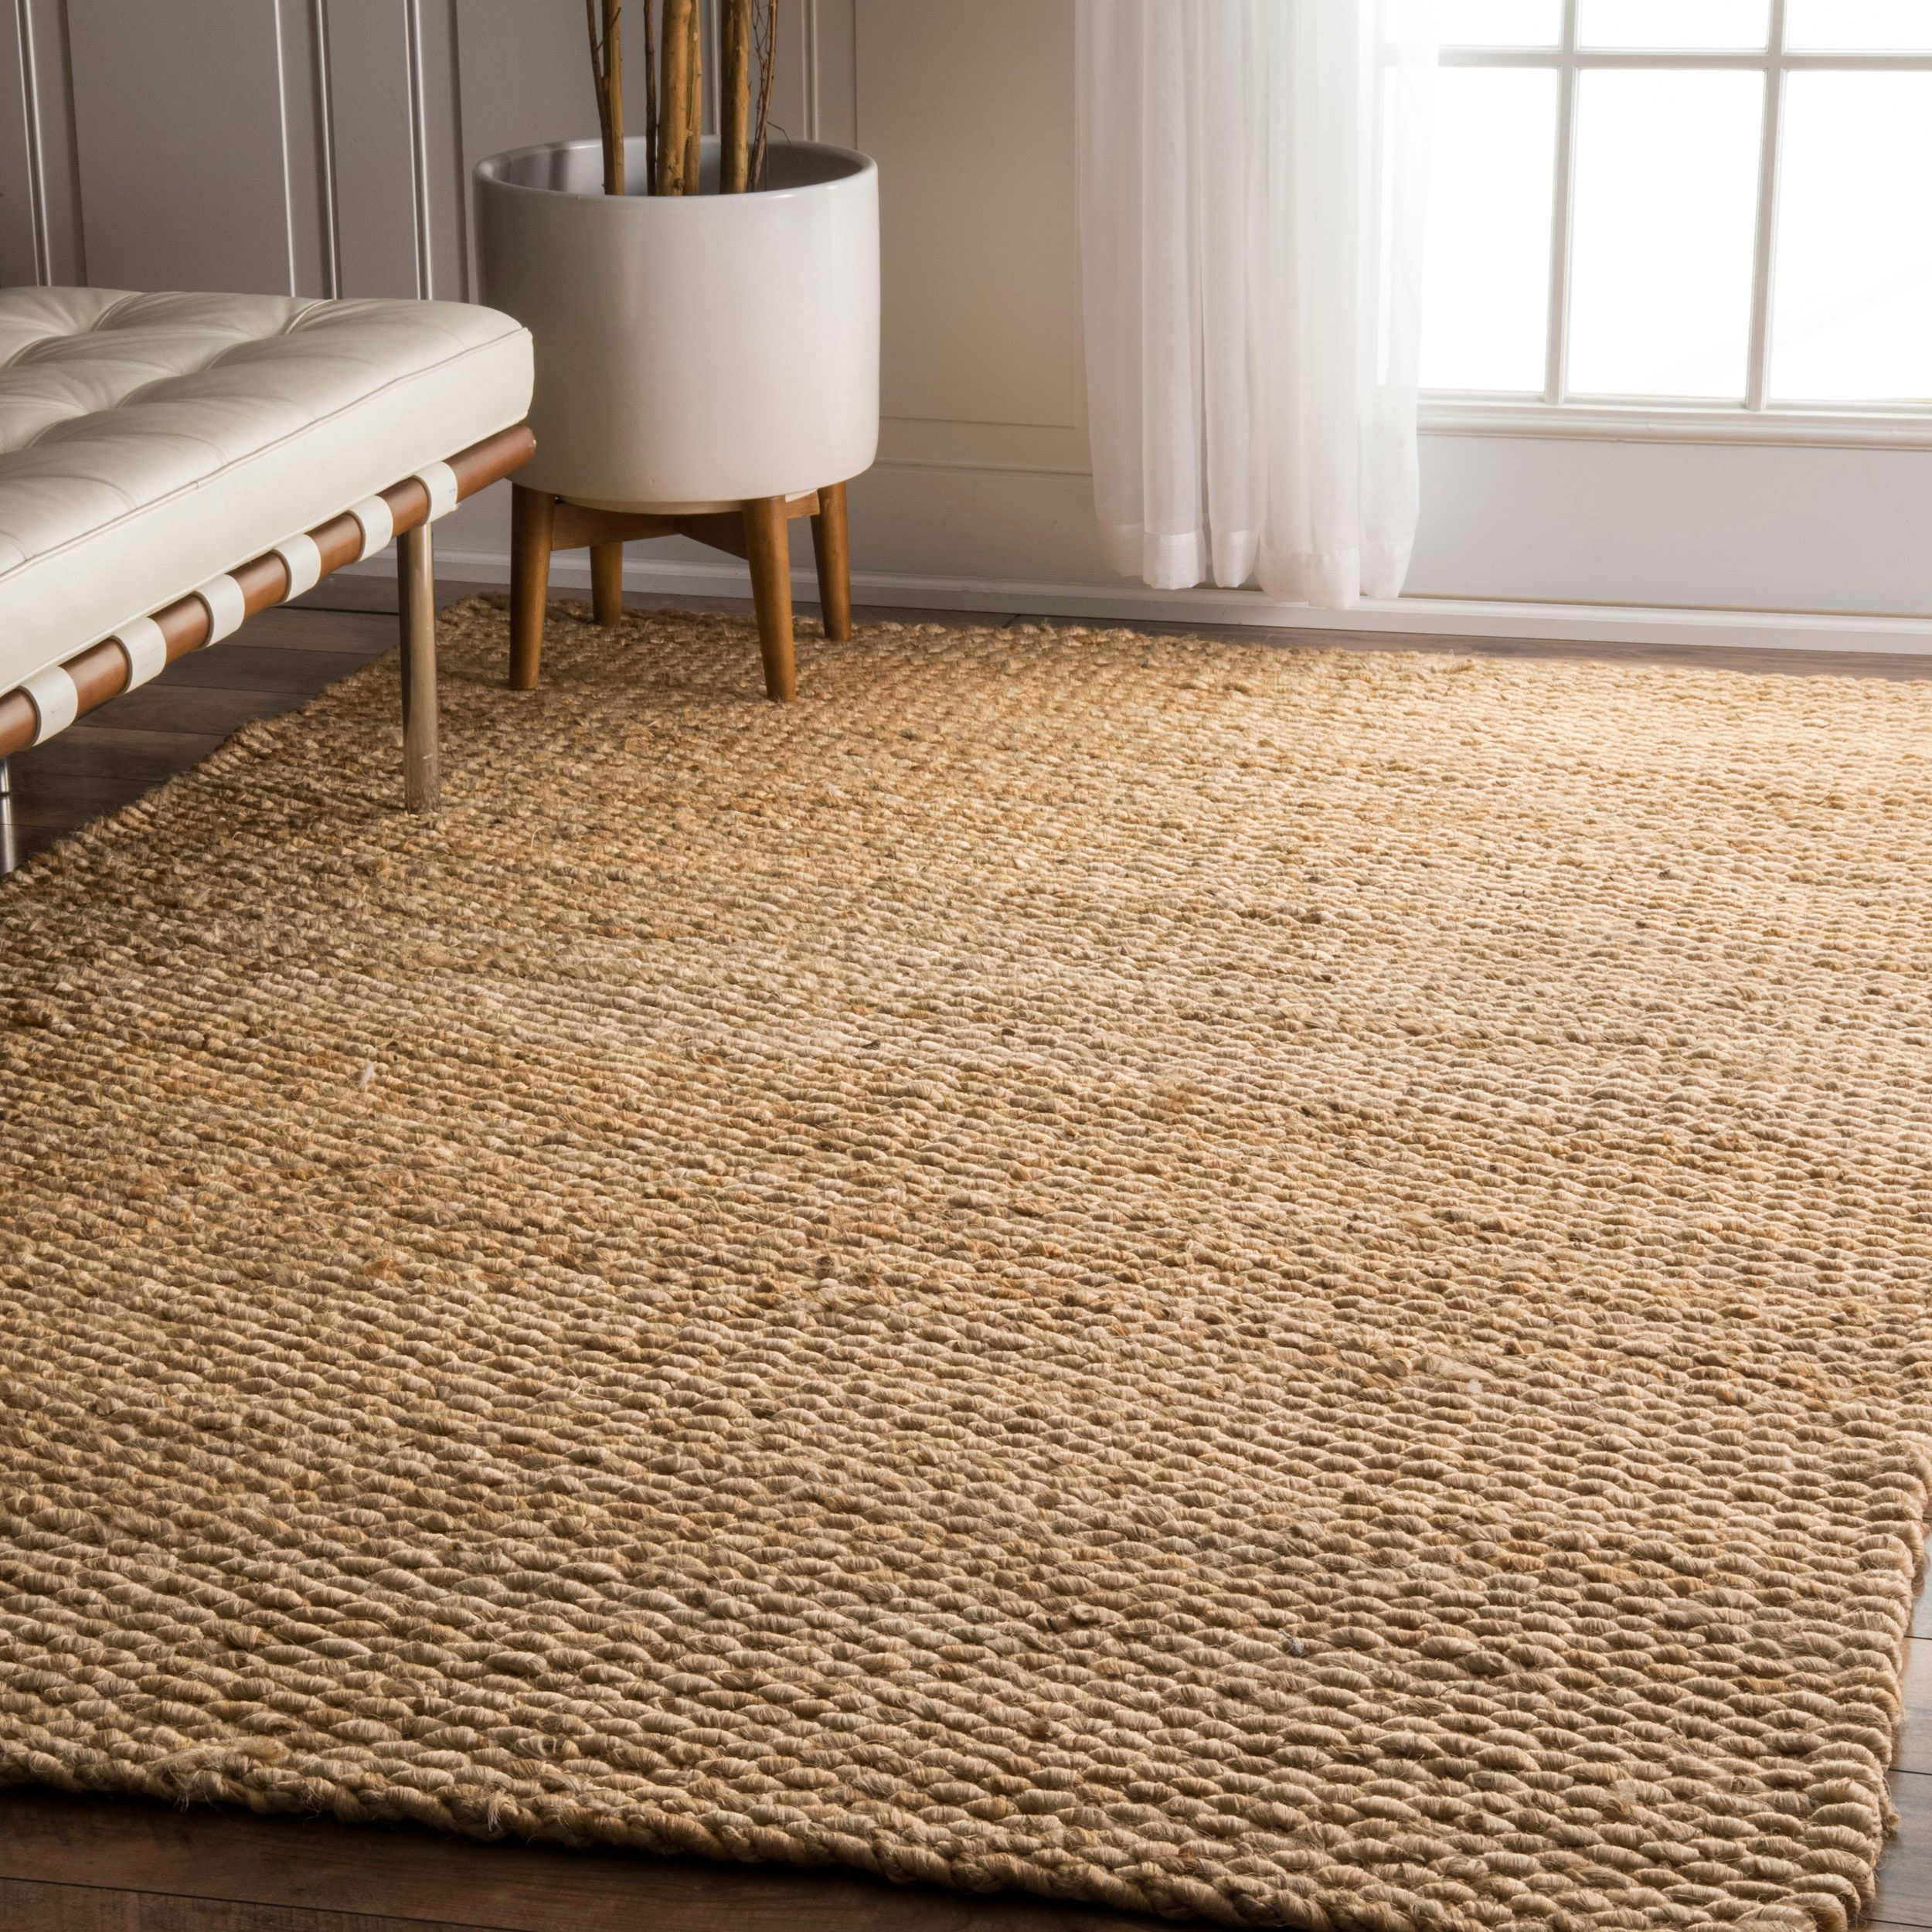 Online Shopping Bedding Furniture Electronics Jewelry Clothing More Tapis Jute Idees Pour La Maison Tapis